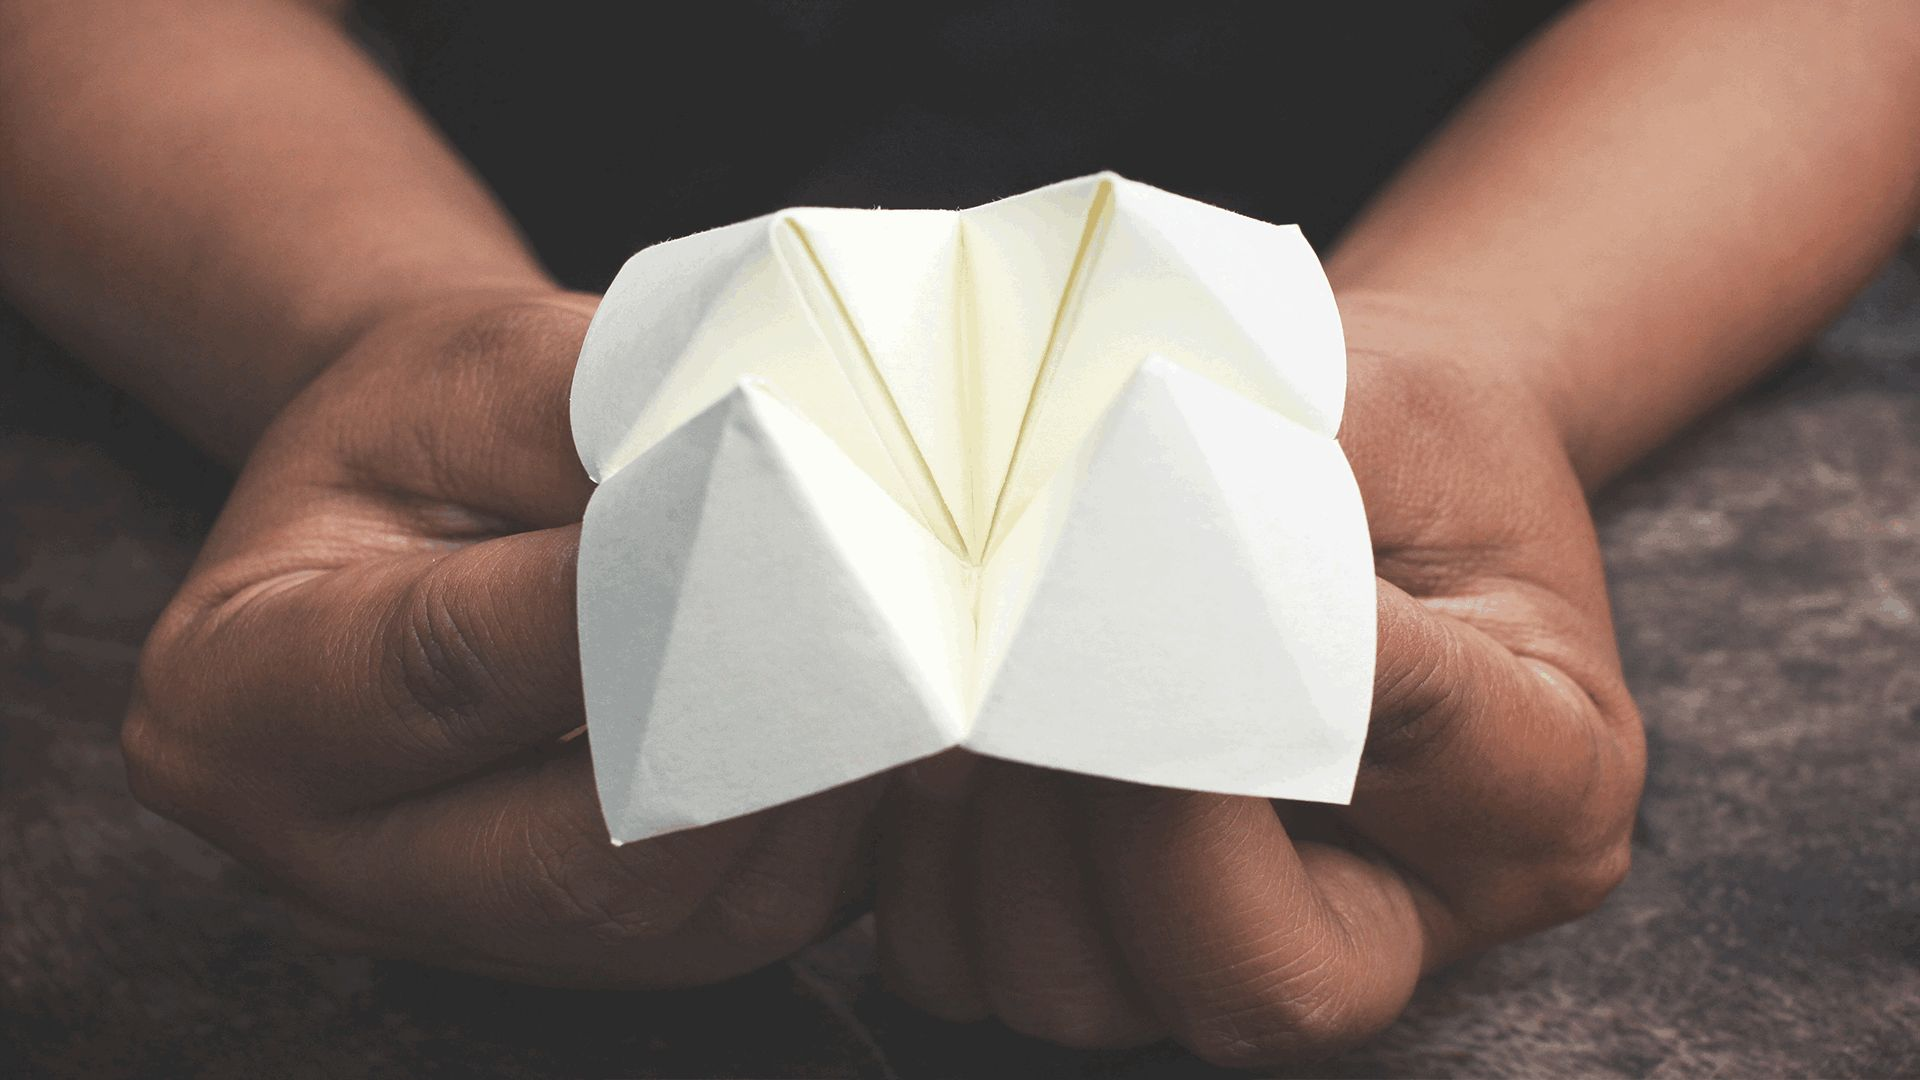 How to make a DIY paper fortune teller